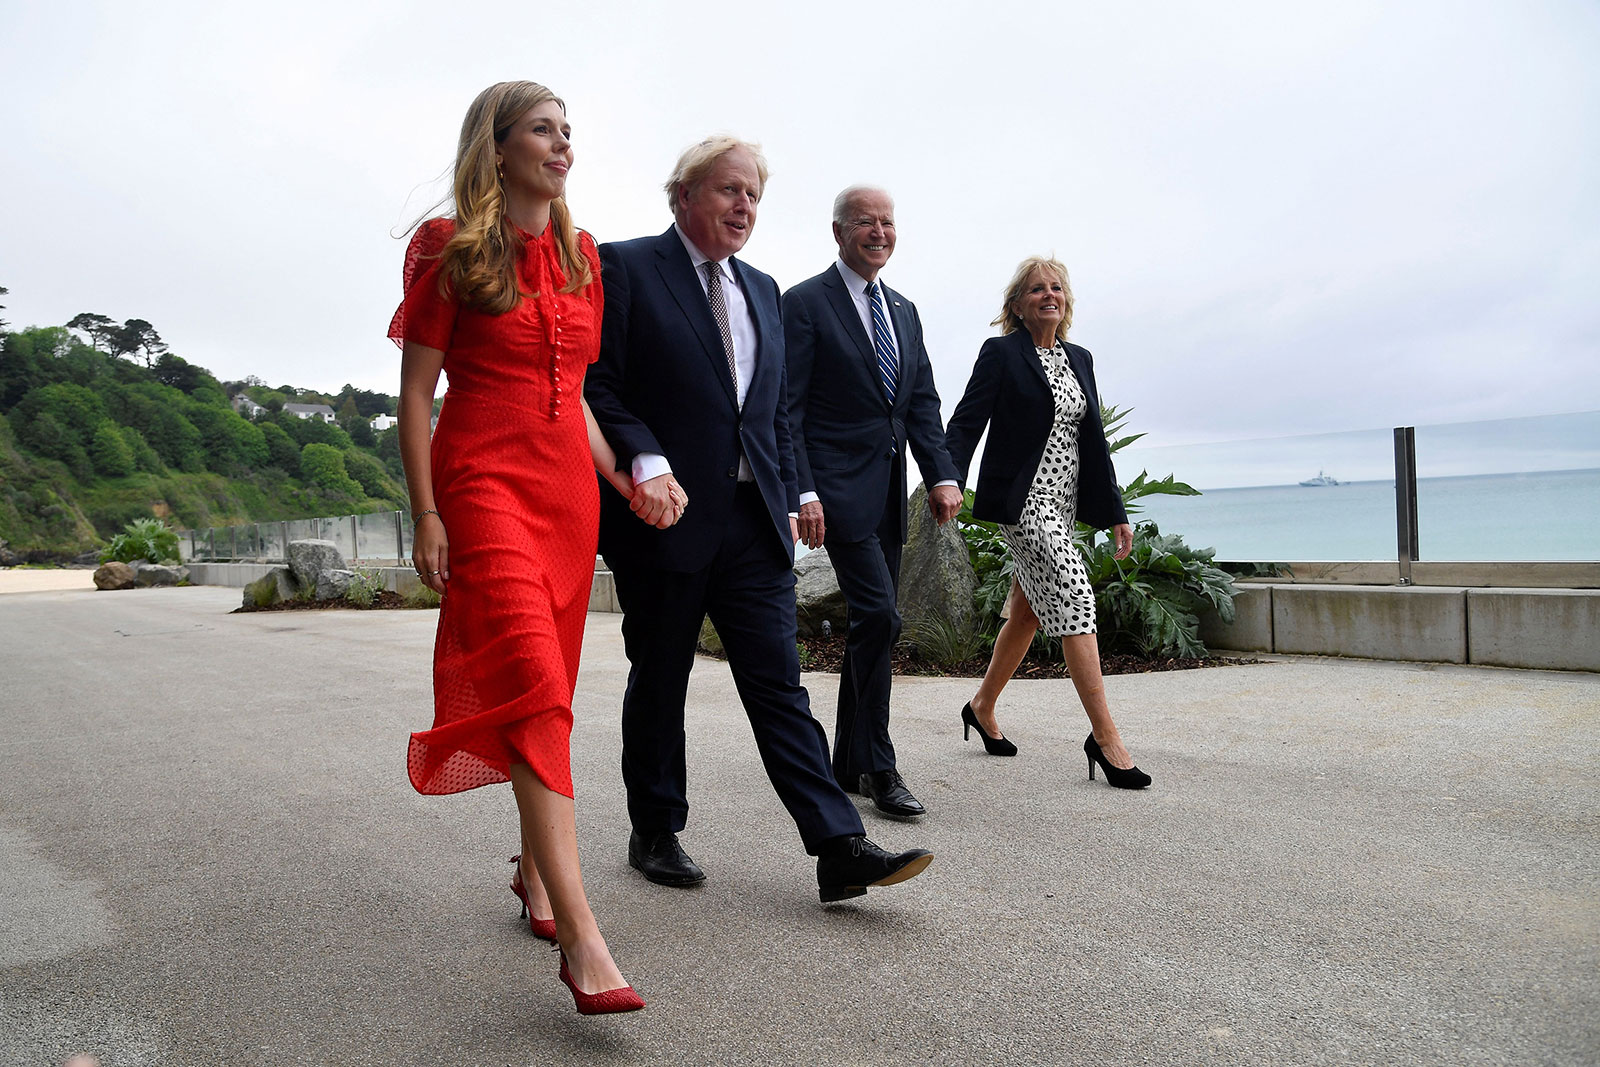 Britain's Prime Minister Boris Johnson, his wife Carrie Johnson and US President Joe Biden with first lady Jill Biden walk outside Carbis Bay, Cornwall, on Thursday, June 10.